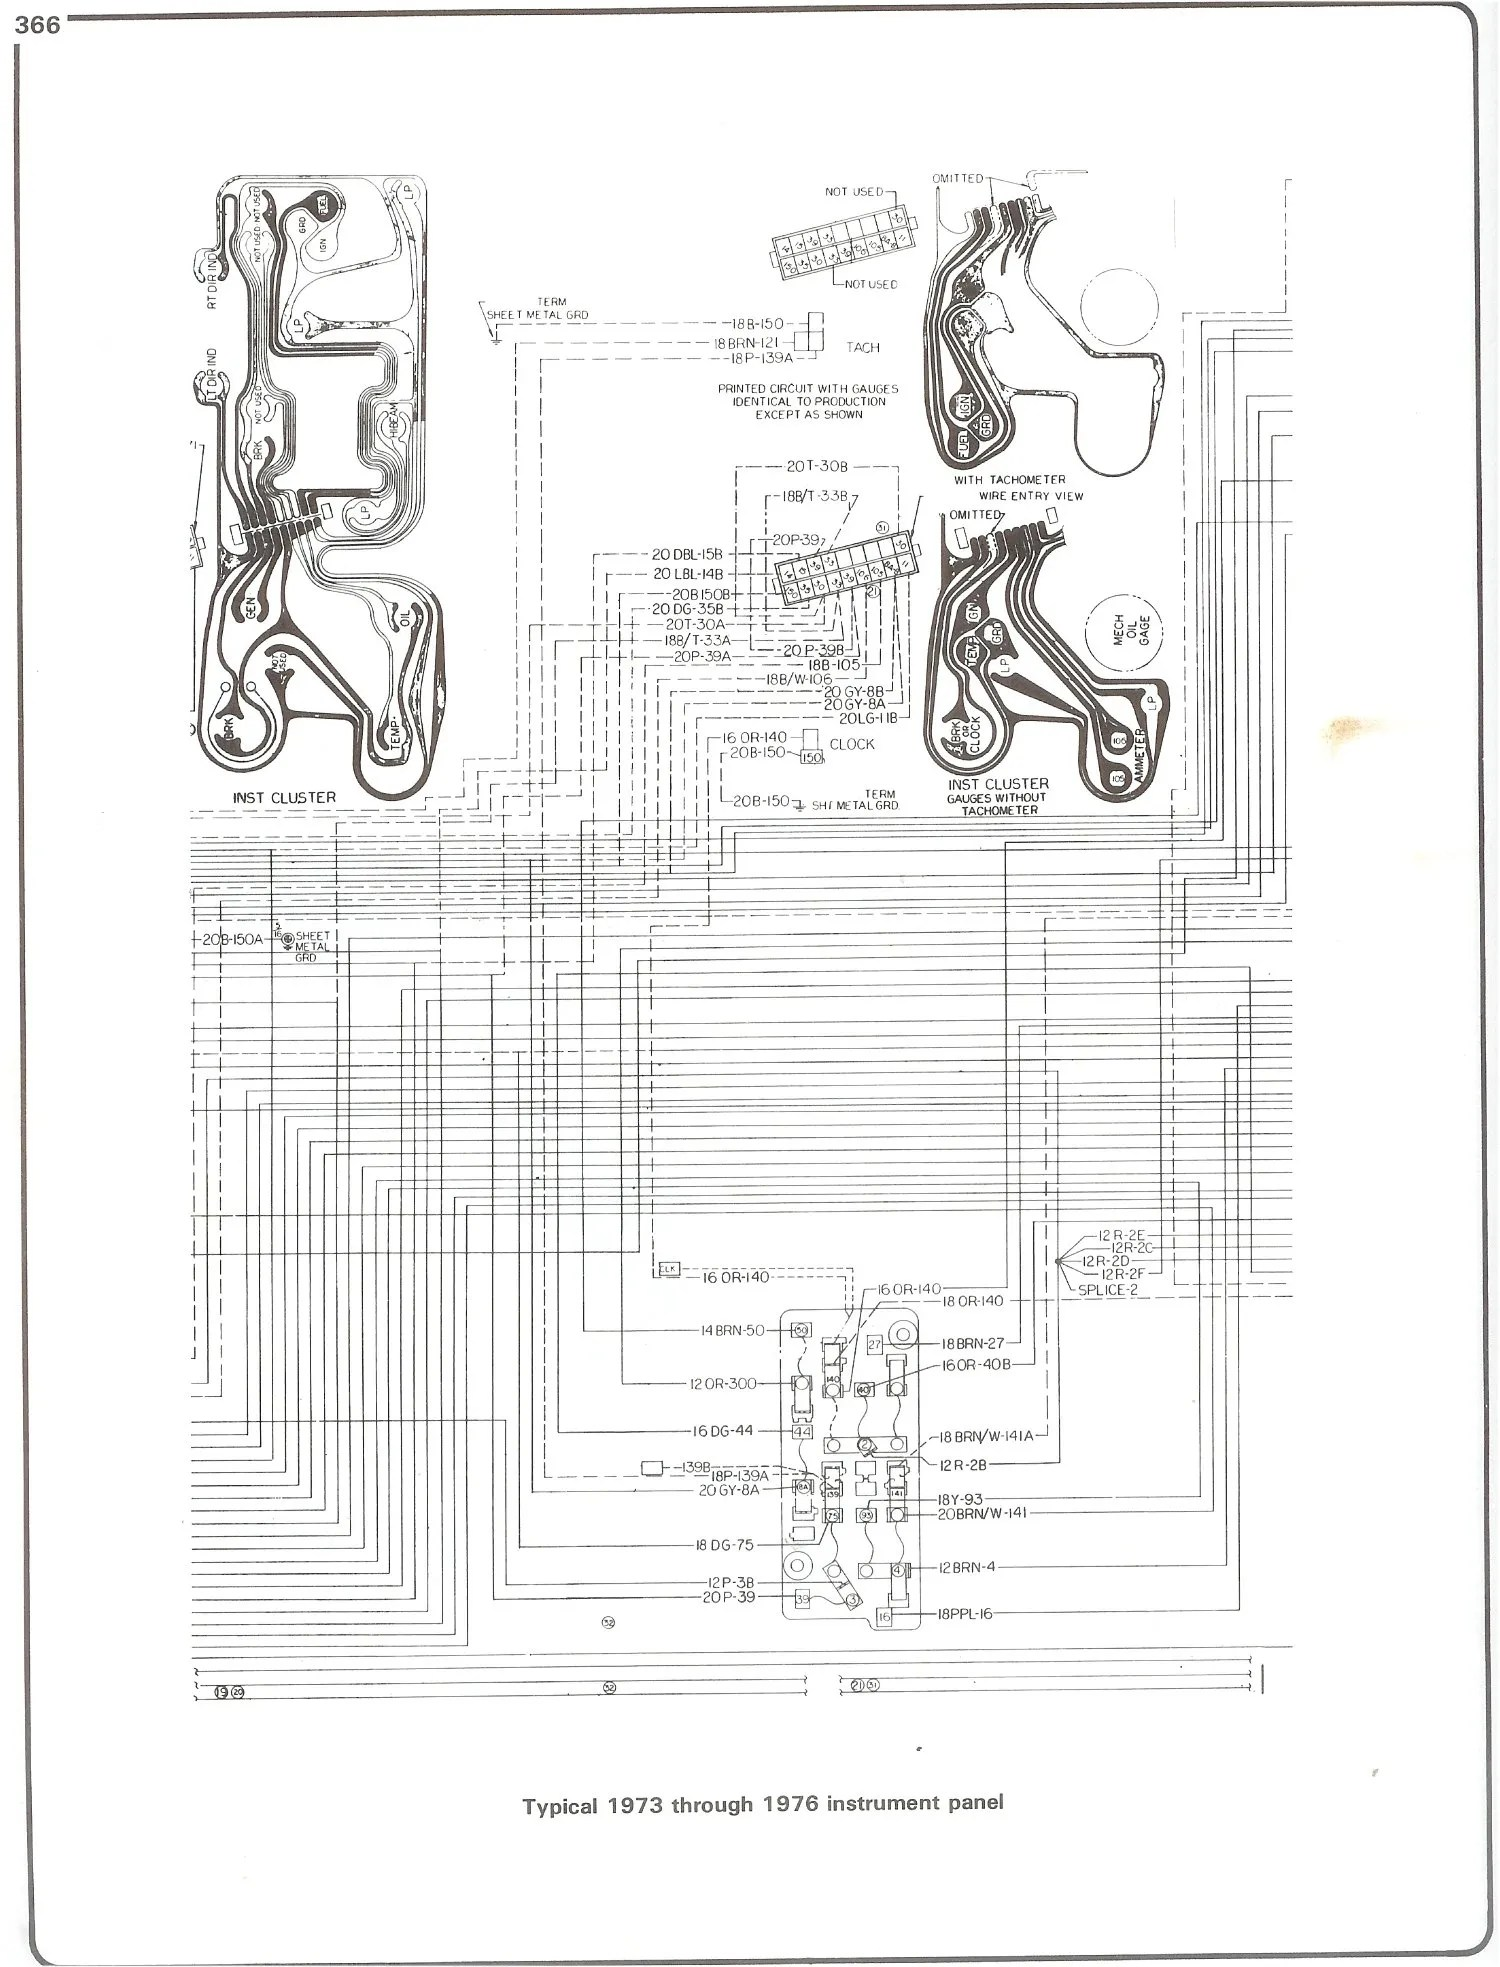 hight resolution of 86 chevy truck wiring diagram wiring diagram centre 86 chevy truck turn signal wiring diagram 86